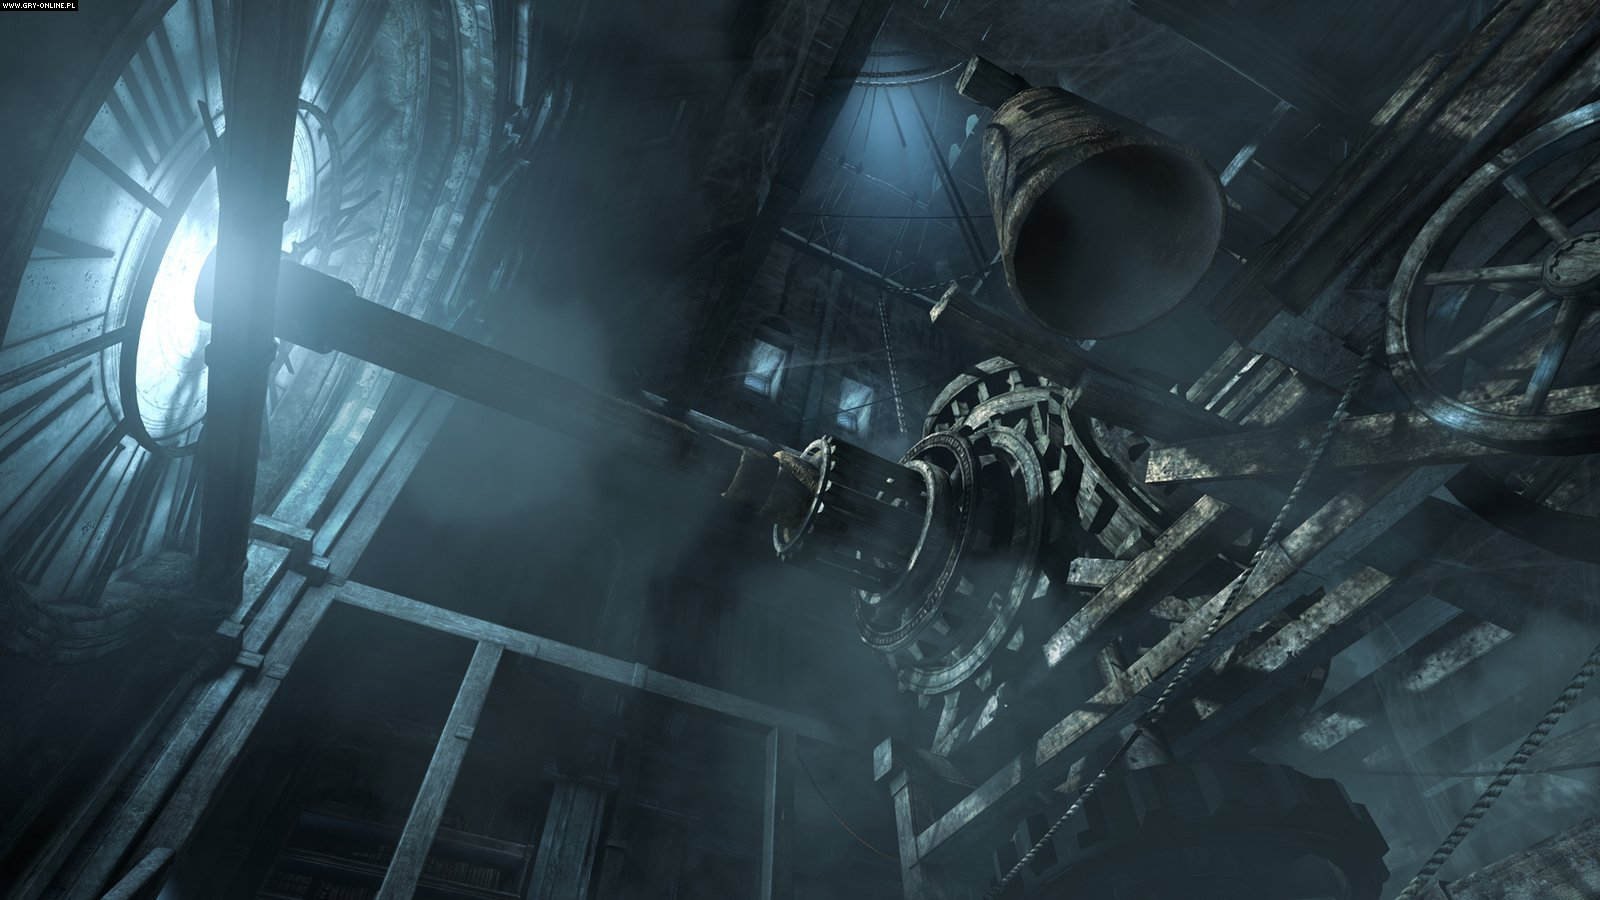 Thief PC, X360, PS4, XONE Gry Screen 7/68, Eidos Montreal, Square-Enix / Eidos